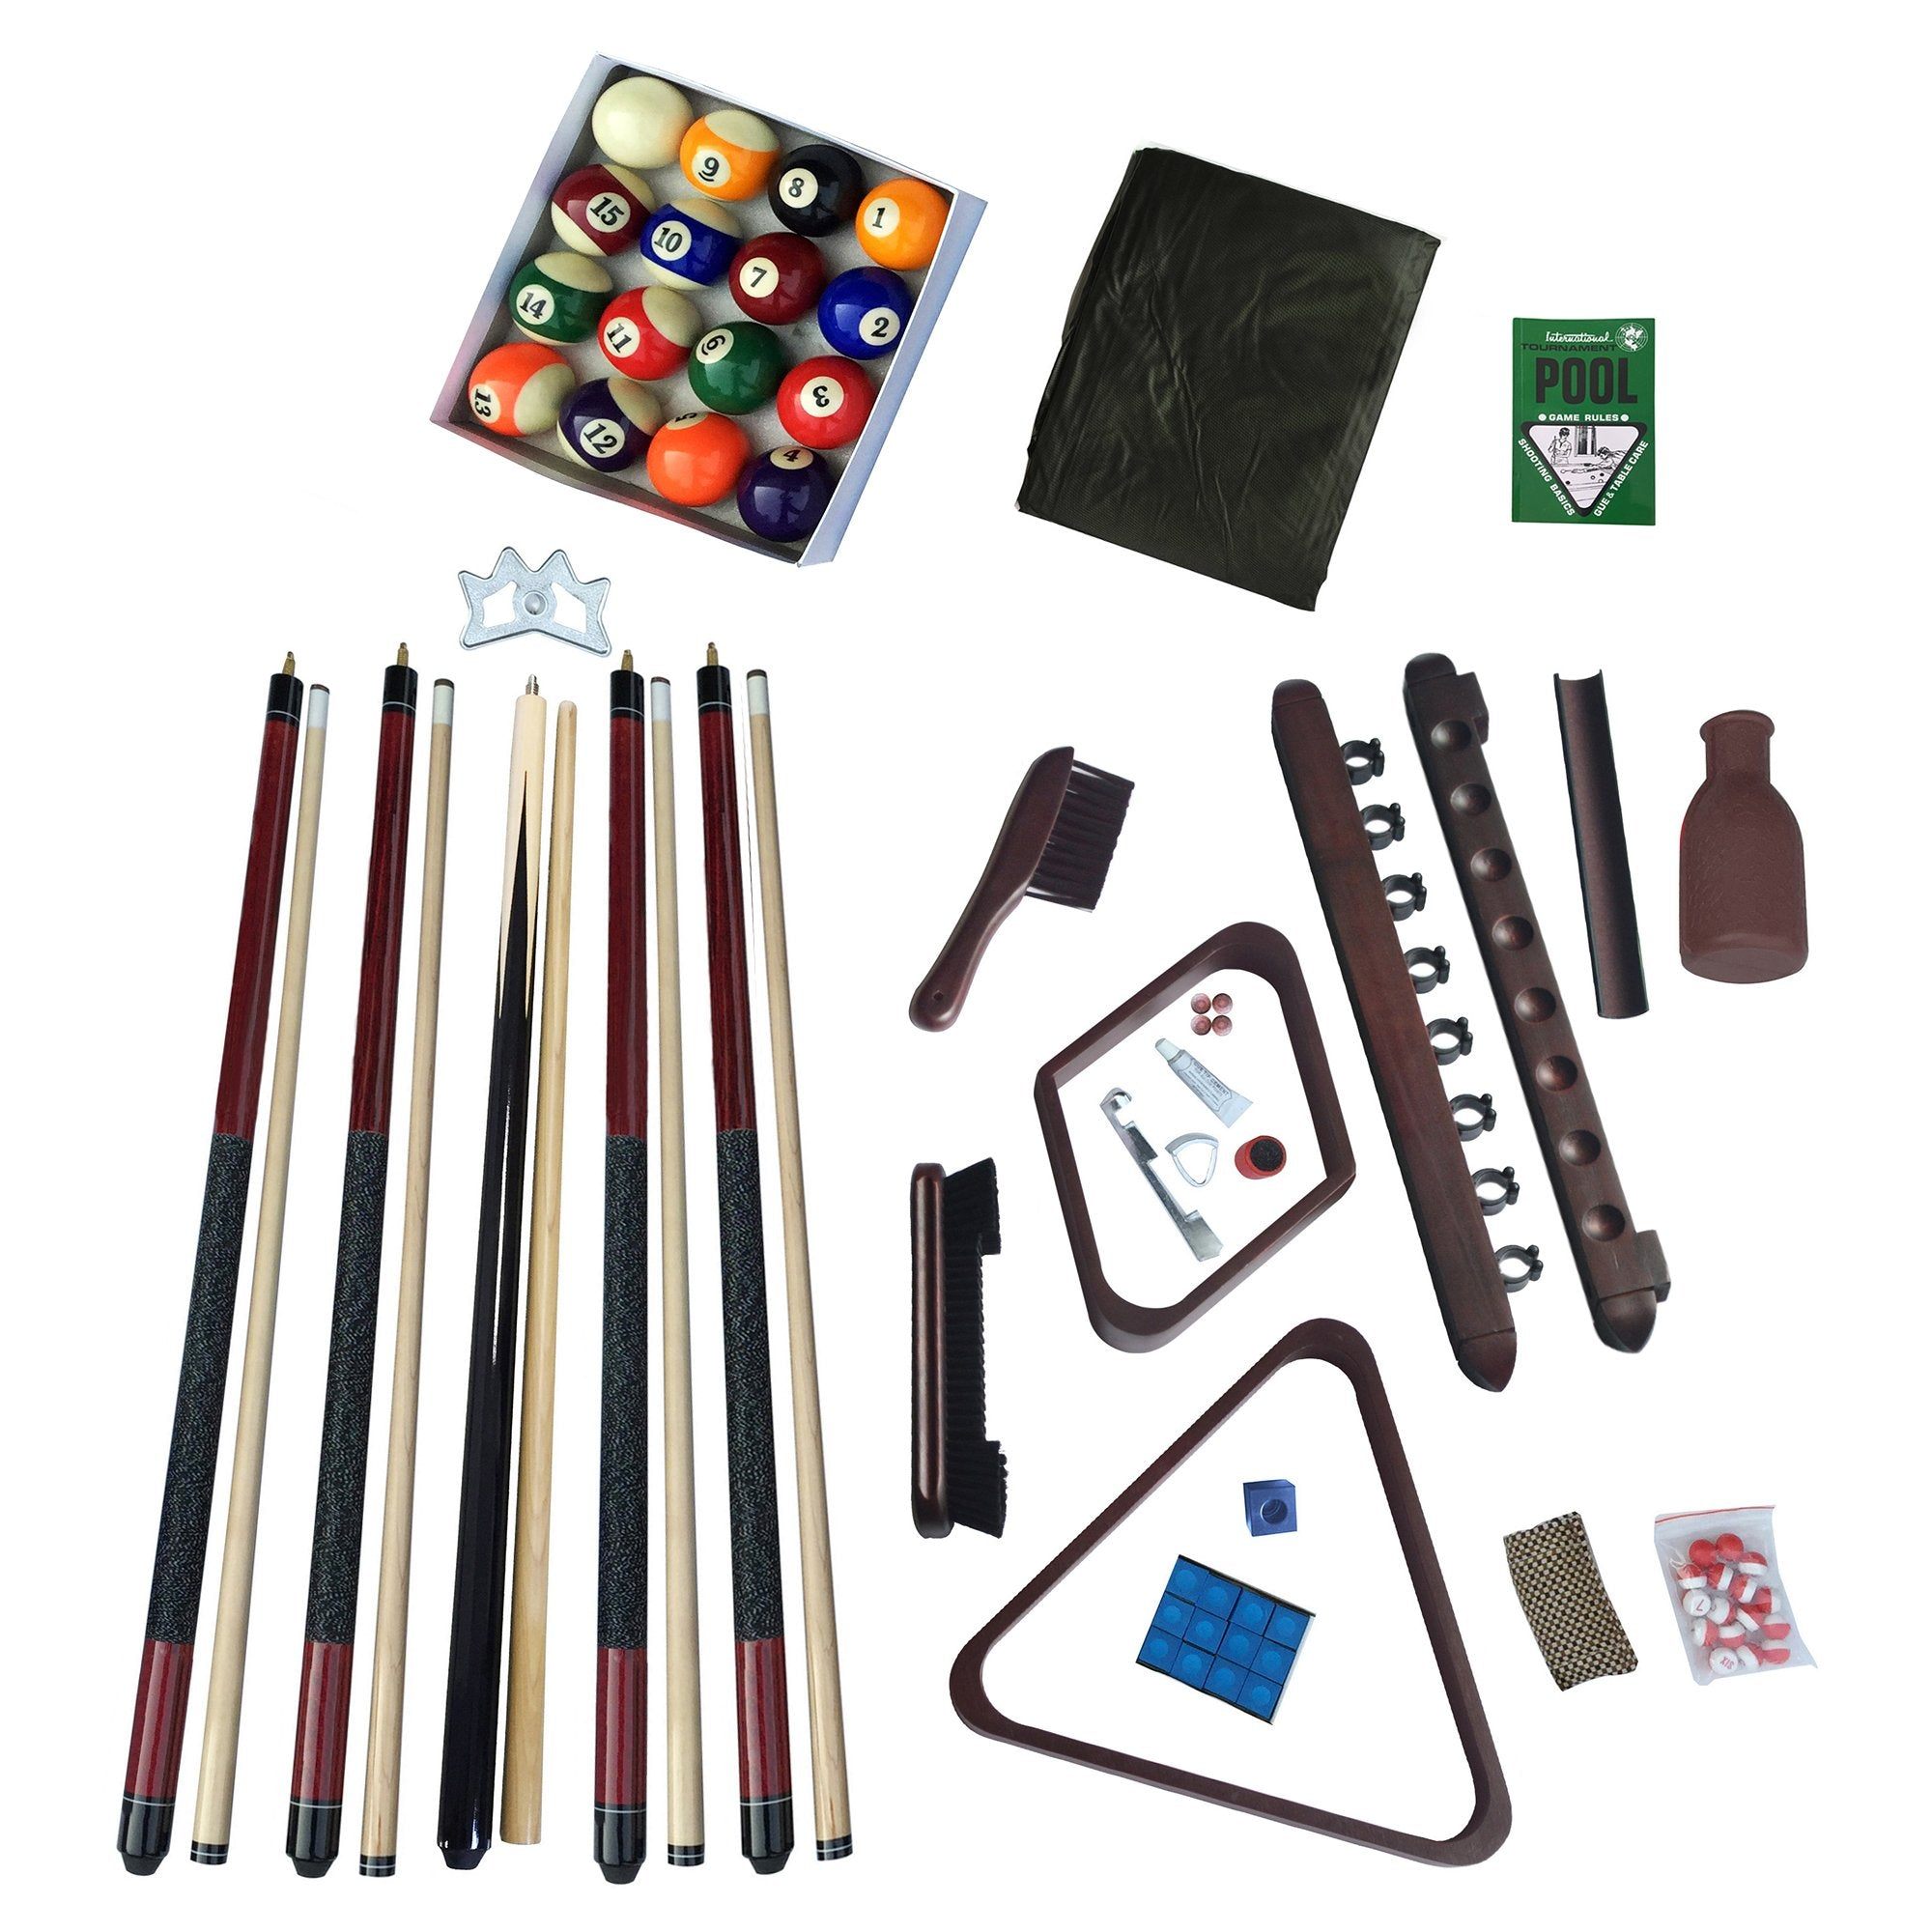 Hathaway Deluxe Billiards Accessory Kit Mahogany Finish - Gaming Blaze